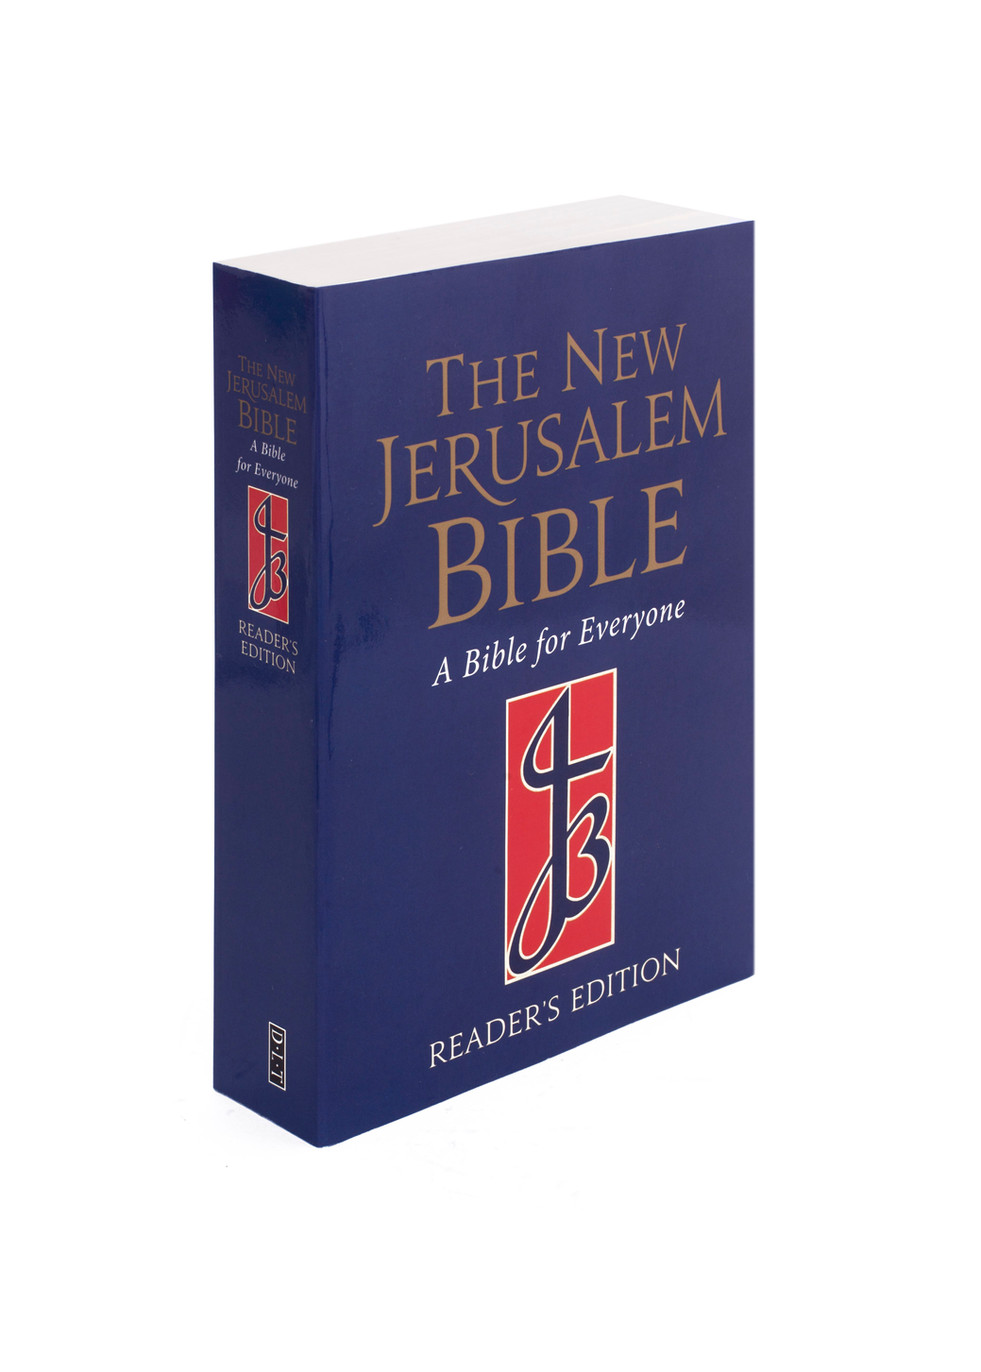 The New Jerusalem Bible  The NJB Pocket Series NJB Pocket Edition, White Cased Gift Bible  978-0-232-53159-6 £15.99 Hardback with Fine Binding 1472pp 146x101mm  This handy-sized Pocket Edition presents the New Jerusalem Bible in an easily accessible and manageable form suitable for everyone.   * Accurate, clear and modern * Beautiful gift format * Gold on white design * Page-edge gilding * Slipcase * Presentation page * Ribbon marker * Great price! * A Glossary, with verse references, explaining key terms and themes * A Chronological History, showing biblical events against contemporary world rulers and dynasties * An Index of Persons, with verse references * Brief Introductions to every book * Almost 200 Footnotes on key words and concepts  NJB White Leather Presentation Bible  978-0-232-52312-6 £24.99 Cased White Leather with Fine Binding 1472pp 146 x 101mm   This beautiful Pocket Edition presents the text in perfect gift format, suitable for any occasion, with a self-adhesive presentation plate, bound in white leather with gold blocking, gilt edges, white ribbon and stored in a slipcase.    It contains the full Bible, with special features to help you understand and navigate the text:   * A Glossary, with verse references, explaining key terms and themes * A Chronological History, showing biblical events against contemporary world rulers and dynasties * An Index of Persons, with verse references * Brief Introductions to every book * Almost 200 Footnotes on key words and concepts    NJB Pocket Edition Red Leather Bible  978-0-232-51892-4 £24.99 Cased Red Leather with Fine Binding 1472pp 146 x101mm    This handy-sized Pocket Edition presents the New Jerusalem Bible in an easily accessible and manageable form suitable for everyone.    It is bound in red leather, with gold blocking, head/tail bands, gold edges, rounded corners, coloured end papers and stored in a slipcase.    It contains the full Bible, with special features to help you understand and navigate the text:   * A Glossary, with verse references, explaining key terms and themes * A Chronological History, showing biblical events against contemporary world rulers and dynasties * An Index of Persons, with verse references * Brief Introductions to every book * Almost 200 Footnotes on key words and concepts  NJB Pocket Edition Black Leather Bible  978-0-232-51891-7 £24.99 Cased Black Leather with Fine Binding 1472pp 146 x 101mm    This handy-sized Pocket Edition presents the New Jerusalem Bible in an easily accessible and manageable form suitable for everyone.    It is bound in black leather, with gold blocking, head/tail bands, gold edges, rounded corners, coloured end papers and stored in a slipcase.    It contains the full Bible, with special features to help you understand and navigate the text:   * A Glossary, with verse references, explaining key terms and themes * A Chronological History, showing biblical events against contemporary world rulers and dynasties * An Index of Persons, with verse references * Brief Introductions to every book * Almost 200 Footnotes on key words and concepts      NJB Pocket Edition Cased Bible  978-0-232-51890-0 £9.99 Hardback 1472pp 146 x101mm   The New Jerusalem Bible is recognised as one of today's most accurate, clear and modern translations, the fruit of long collaboration between leading biblical scholars.    This handy-sized Pocket Edition presents the New Jerusalem Bible in an easily accessible and manageable form suitable for everyone.   It contains the full Bible, with special features to help you understand and navigate the text:   * A Glossary, with verse references, explaining key terms and themes * A Chronological History, showing biblical events against contemporary world rulers and dynasties * An Index of Persons, with verse references * Brief Introductions to every book * Almost 200 Footnotes on key words and concepts  The NJB Study Edition NJB Study Bible  978-0-232-52077-4 £25.99 Paperback 2128pp 198 x 136mm    This New Jerusalem Bible Study Edition is the ideal combined Bible-and-handbook. It is designed for students, clergy and readers who seek additional guidance in their reading and study of the Scriptures. It presents the complete Bible text in a single-column format for ease of reading, and includes the comprehensive footnotes of the acclaimed NJB Standard Edition. Bound in a durable cover, designed to stay open on the desktop, and now available with a striking new cover design.   Packed with features, including:    * Comprehensive verse-by-verse footnotes * Extensive Introductions to all the groupings of books in the Bible * A Study Guide covering the major theological terms and themes * An Index of Persons containing mini-biographies of the main biblical characters * An extended Chronological Table setting biblical events against contemporary events, rulers and dynasties * Full-Colour Maps of the Bible lands    The NJB Reader's Series NJB Reader's Edition Cased Bible  978-0-232-51930-3 £16.99 Hardback 1472pp 198 x 136mm   This Reader's Edition presents the New Jerusalem Bible in an easily accessible and manageable form suitable for everyone.    It contains the full Bible, with special features to help you understand and navigate the text:    * A Glossary, with verse references, explaining key terms and themes * A Chronological History, showing biblical events against contemporary world rulers and dynasties * An Index of Persons, with verse references * Brief Introductions to every book * Almost 200 Footnotes on key words and concepts  NJB Reader's Edition Paperback Bible